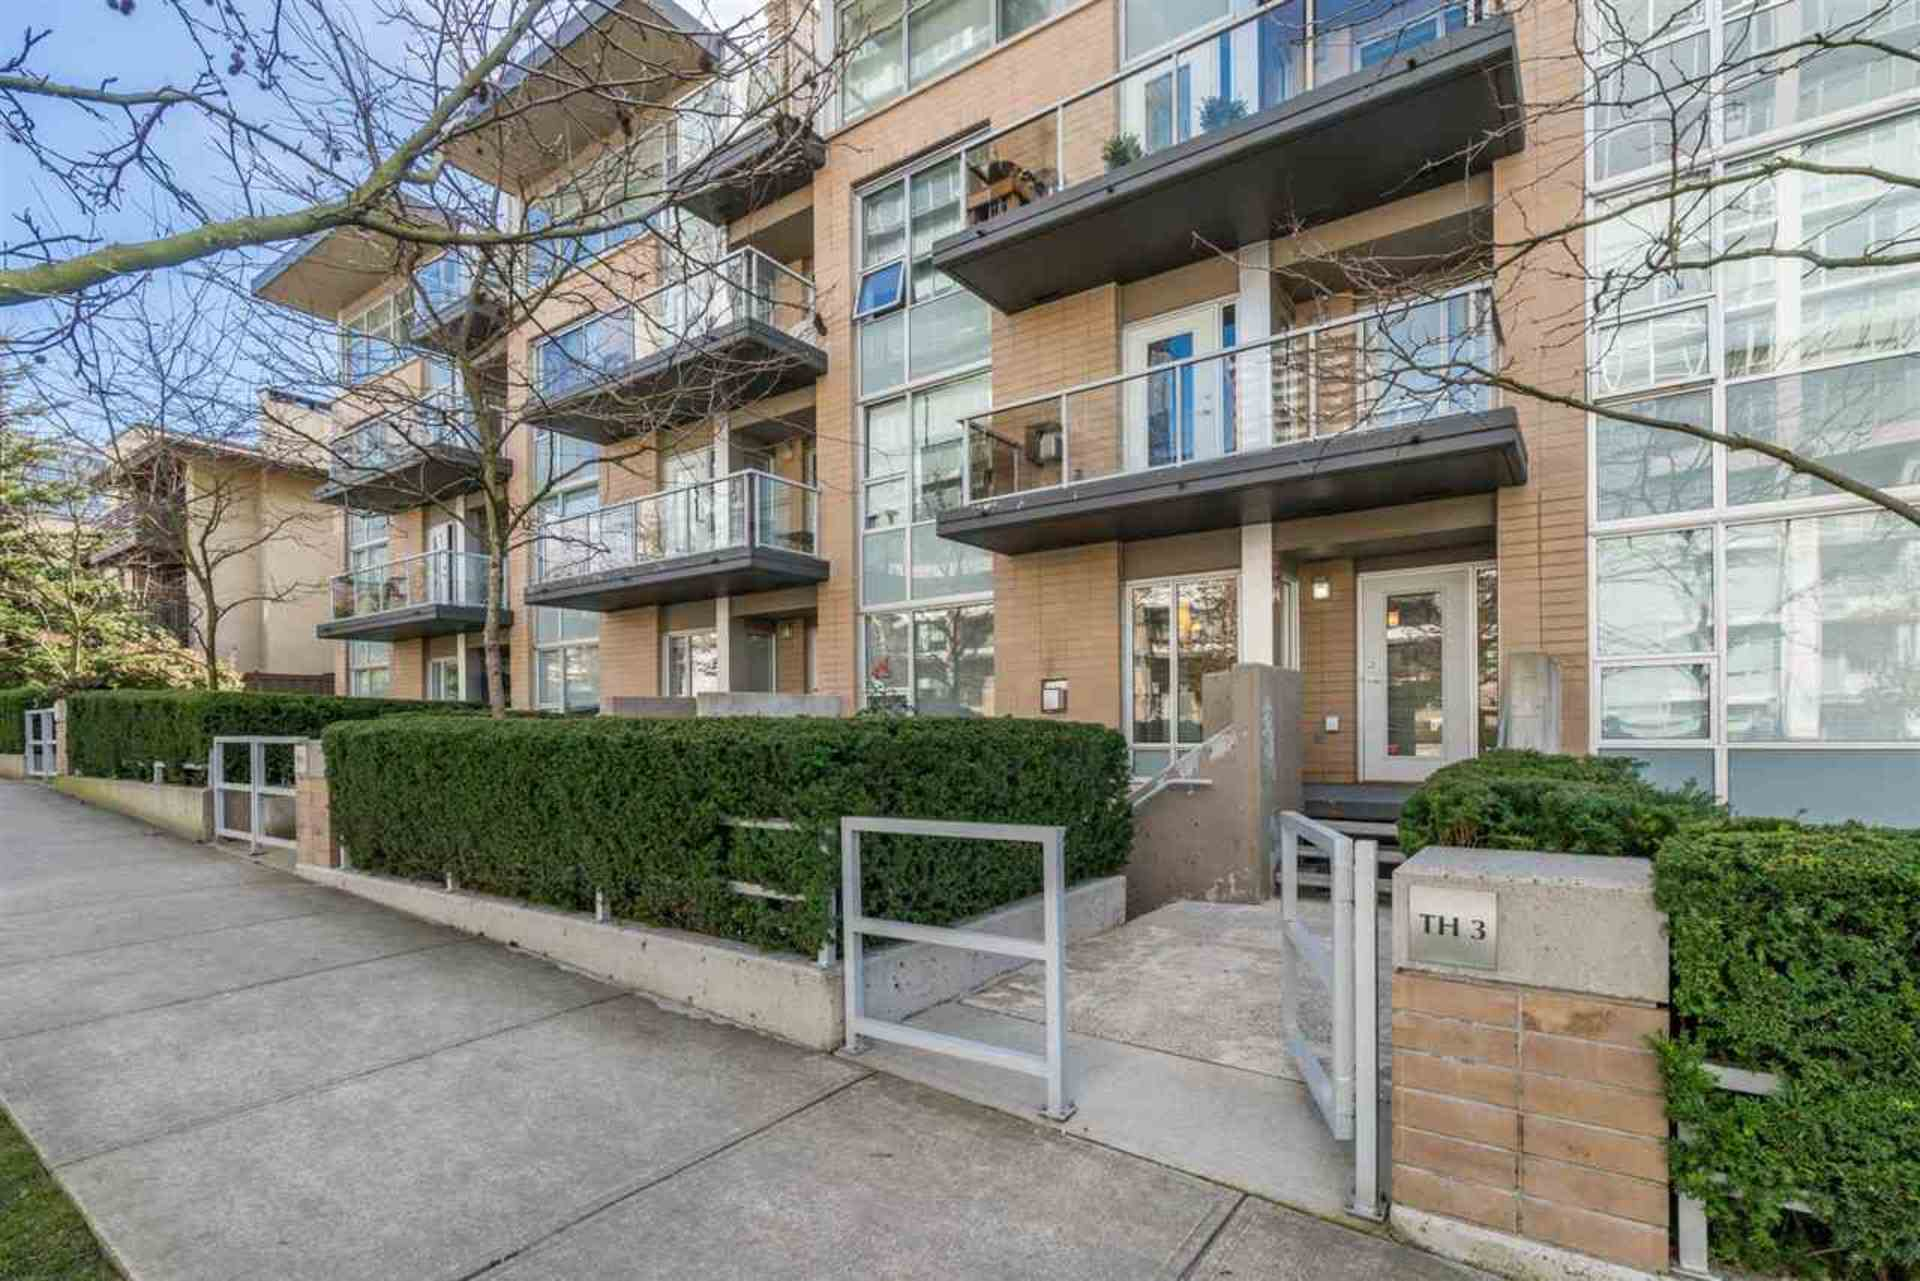 1288-chesterfield-avenue-central-lonsdale-north-vancouver-03 at TH3 - 1288 Chesterfield Avenue, Central Lonsdale, North Vancouver